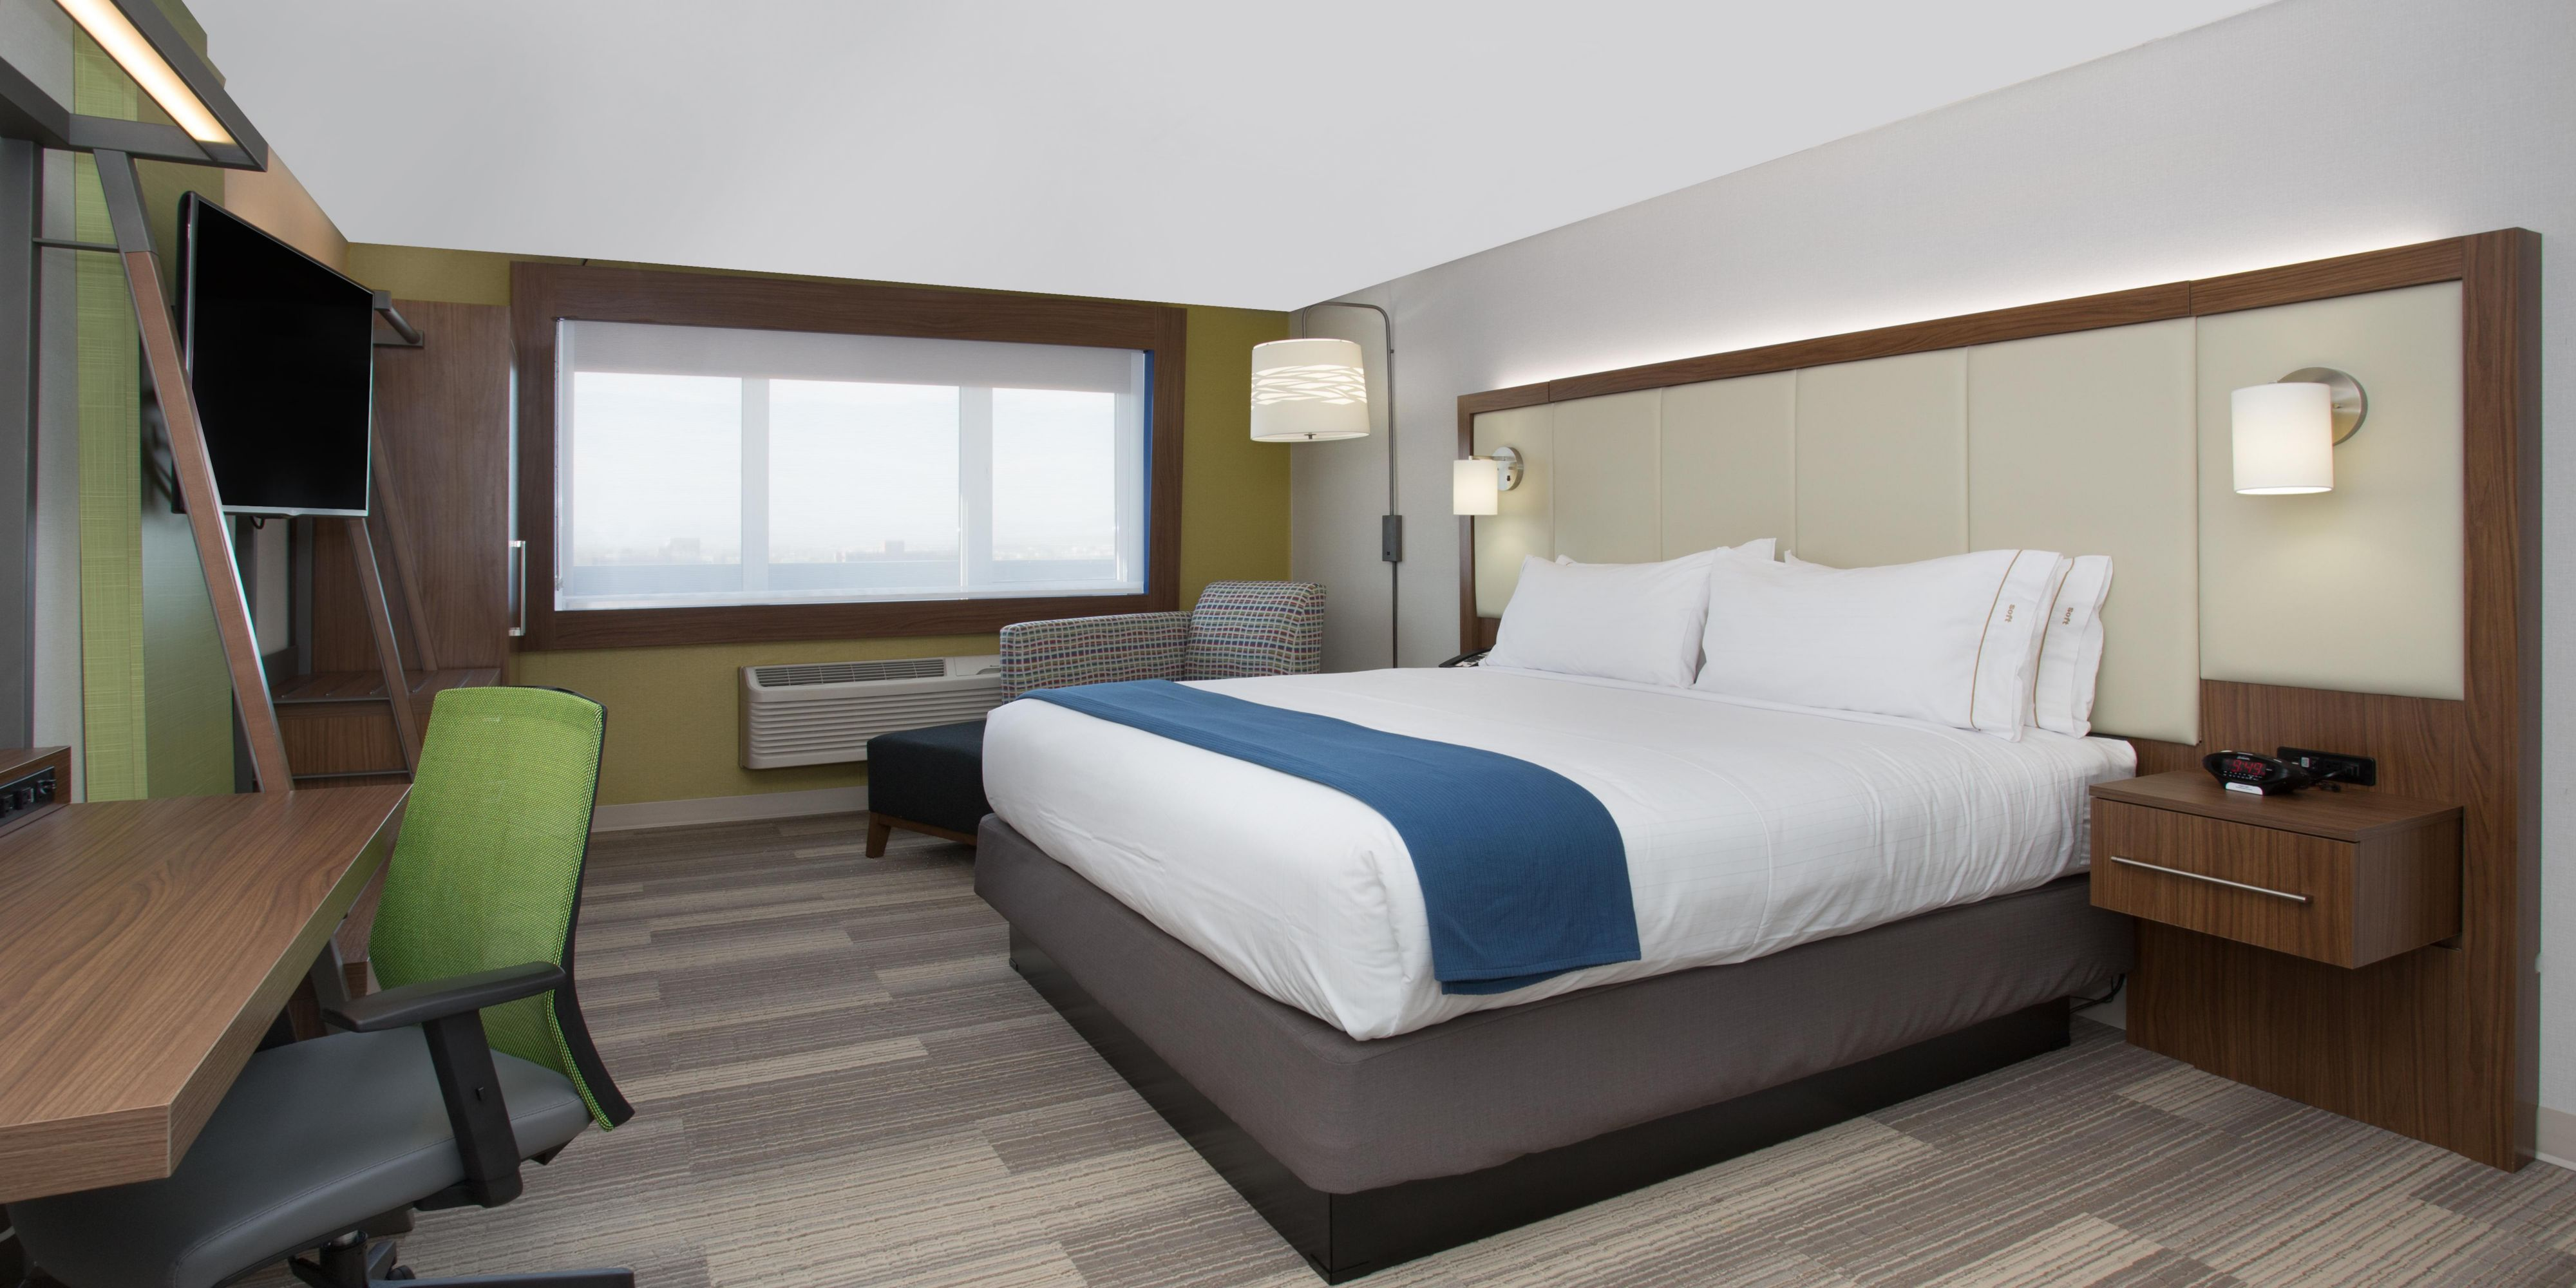 Holiday Inn Express And Suites Monroeville 4320710545 2x1